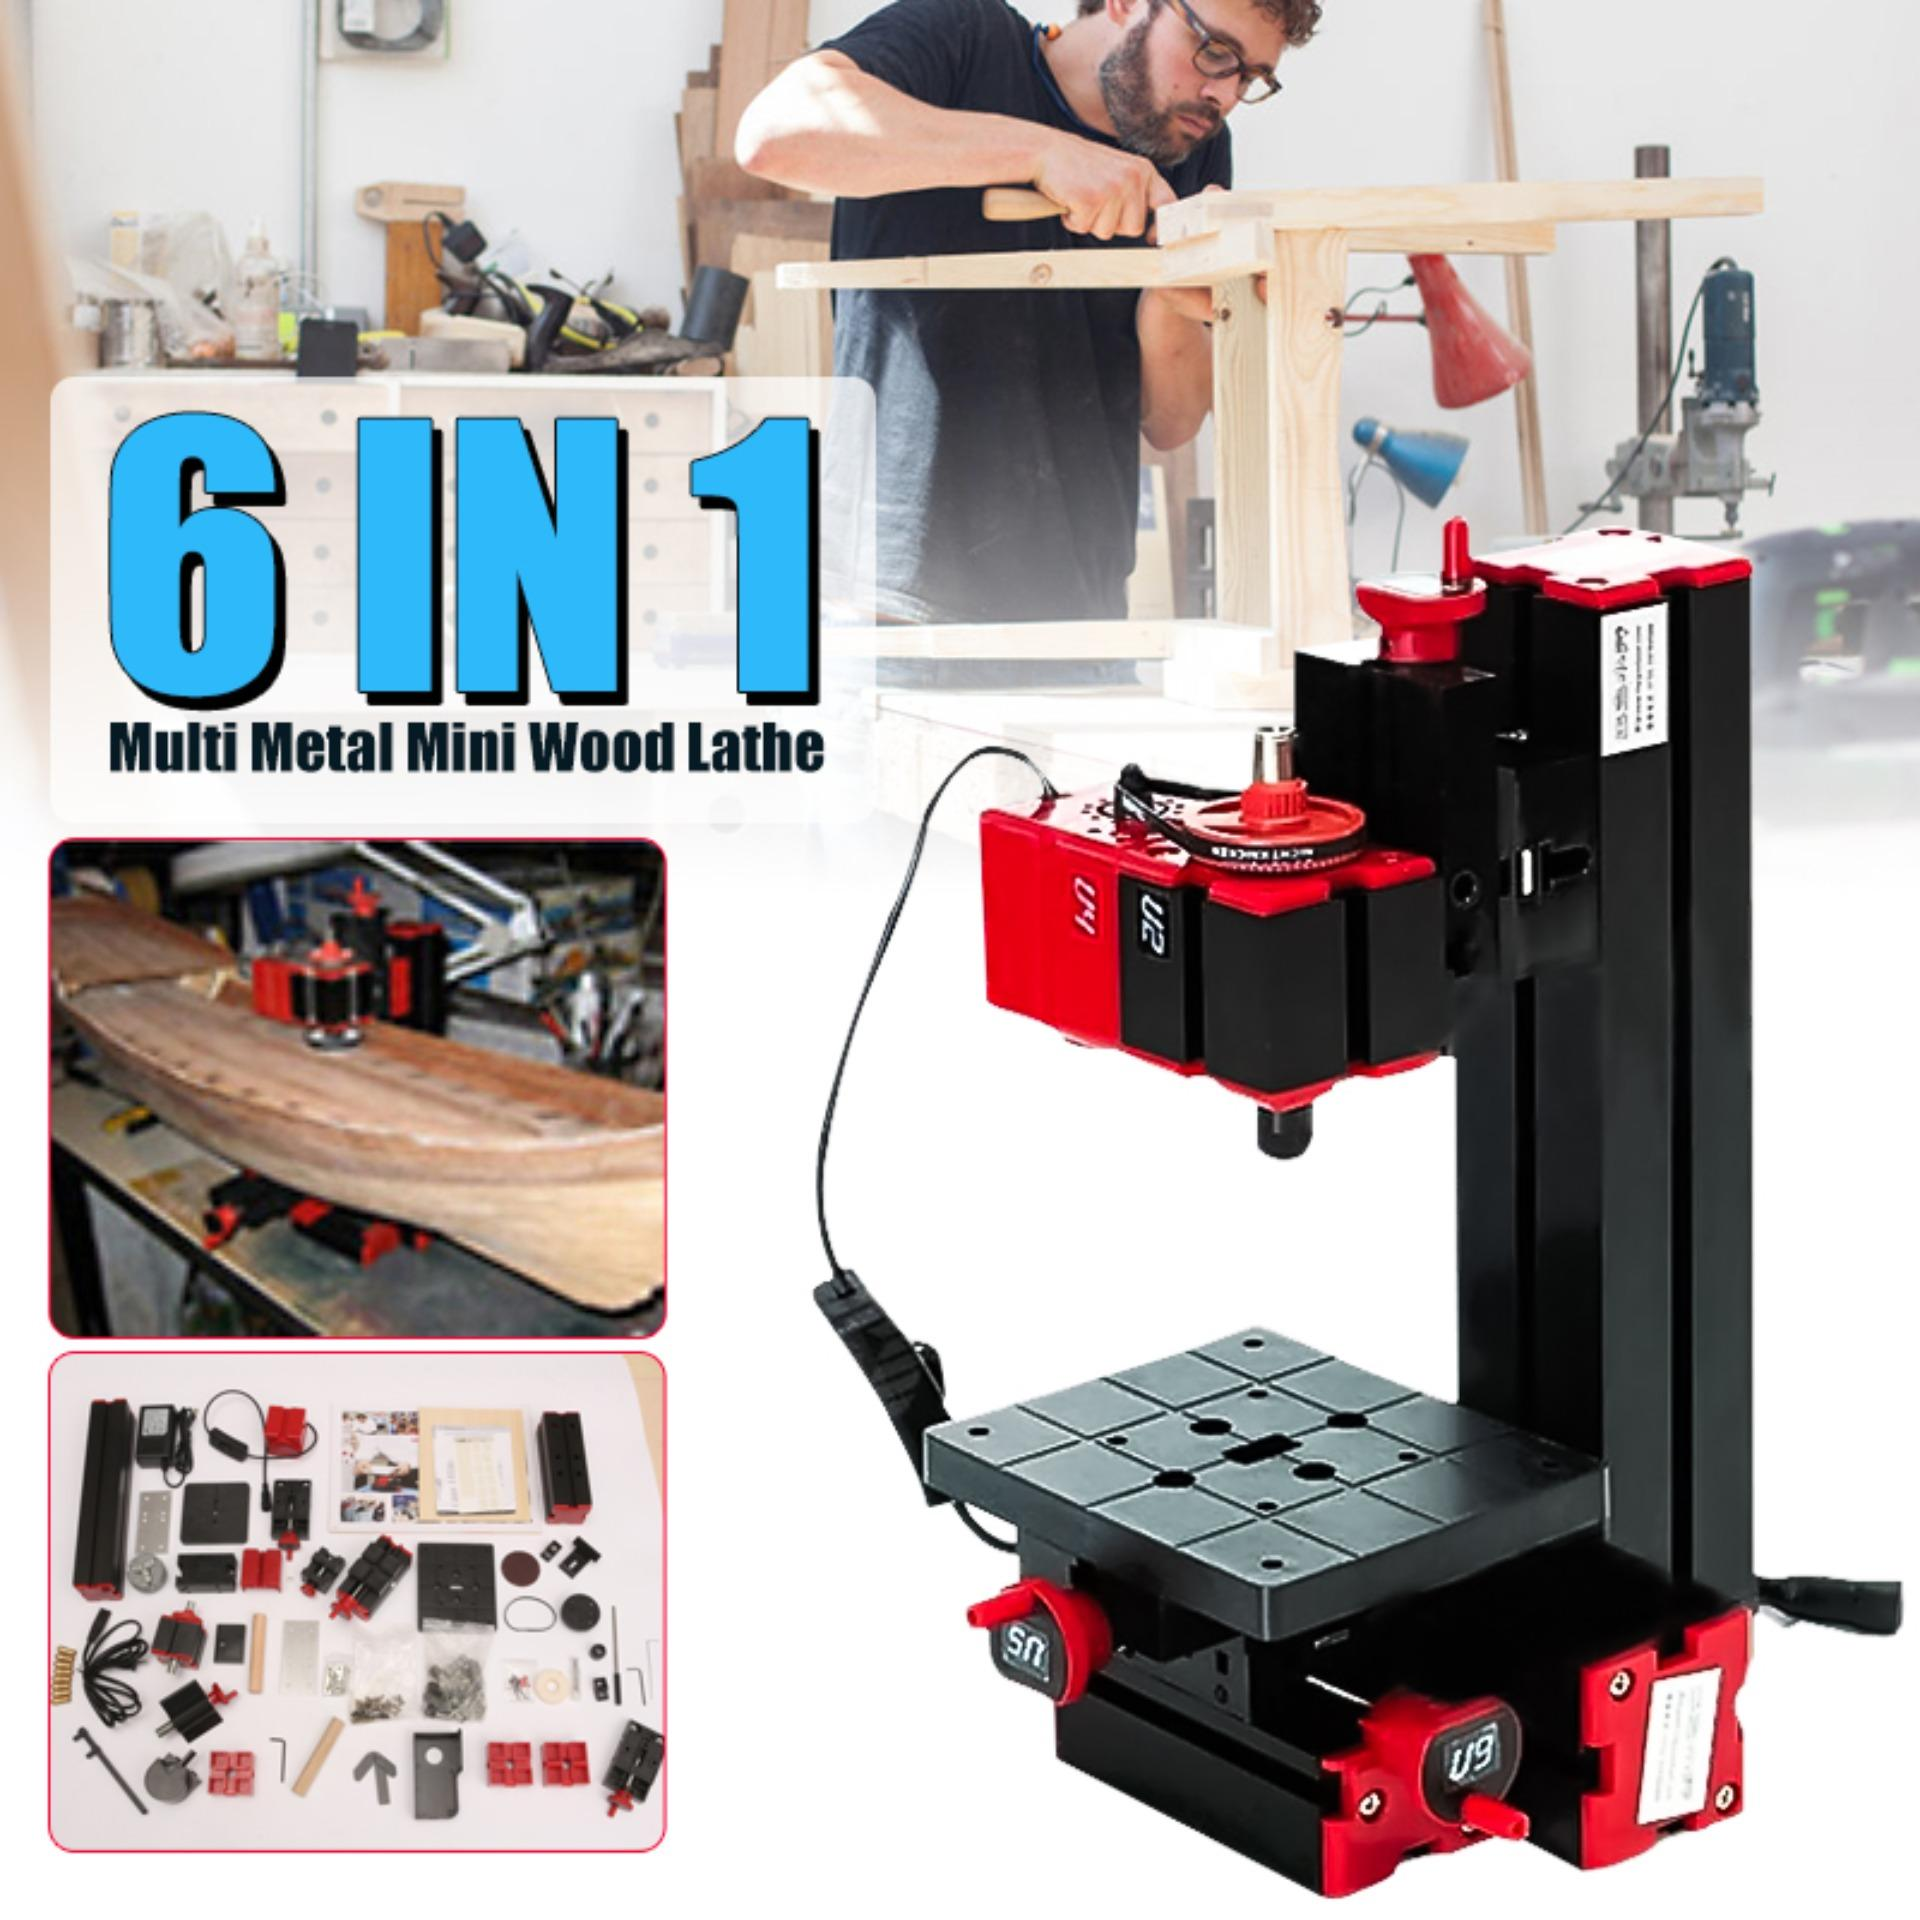 【Free Shipping + Super Deal + Limited Offer】6 In 1 Multi Metal Mini Wood  Lathe Motorized Jig-saw Grinder Driller Milling